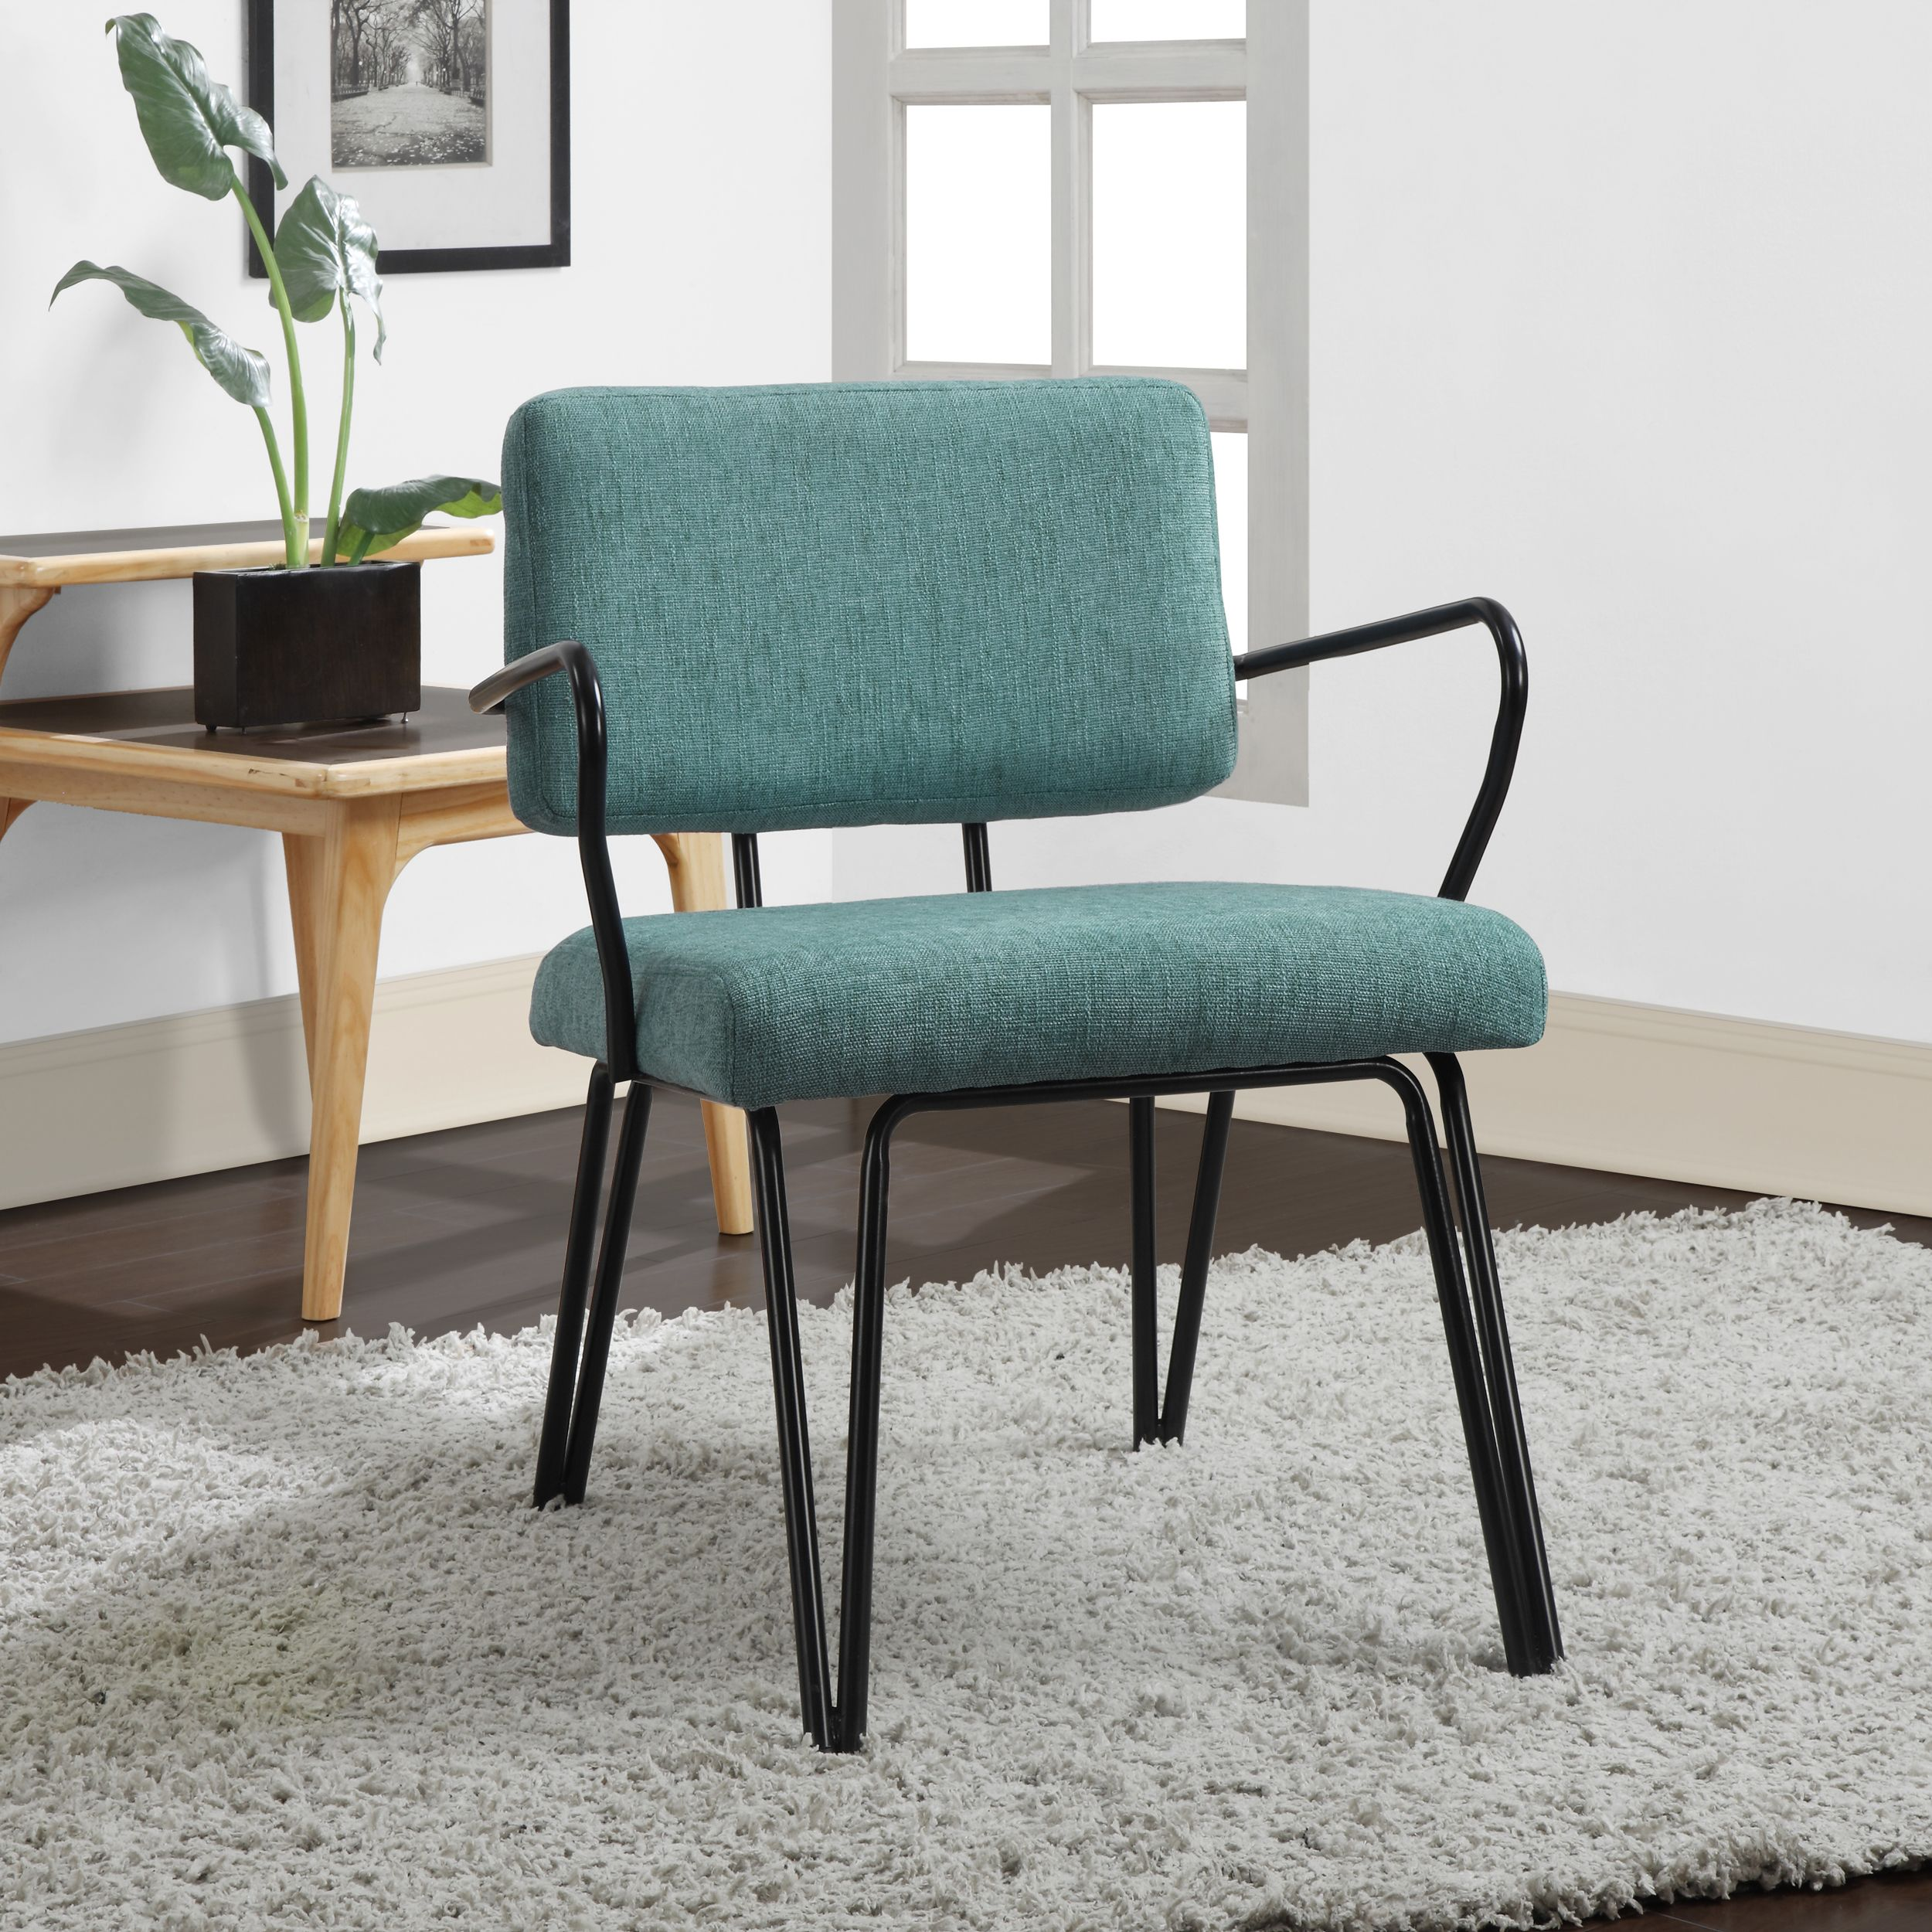 Mid Century Modern Living Room Chairs Palm Springs Blue Upholstery Mid Century Accent Chair By I Love